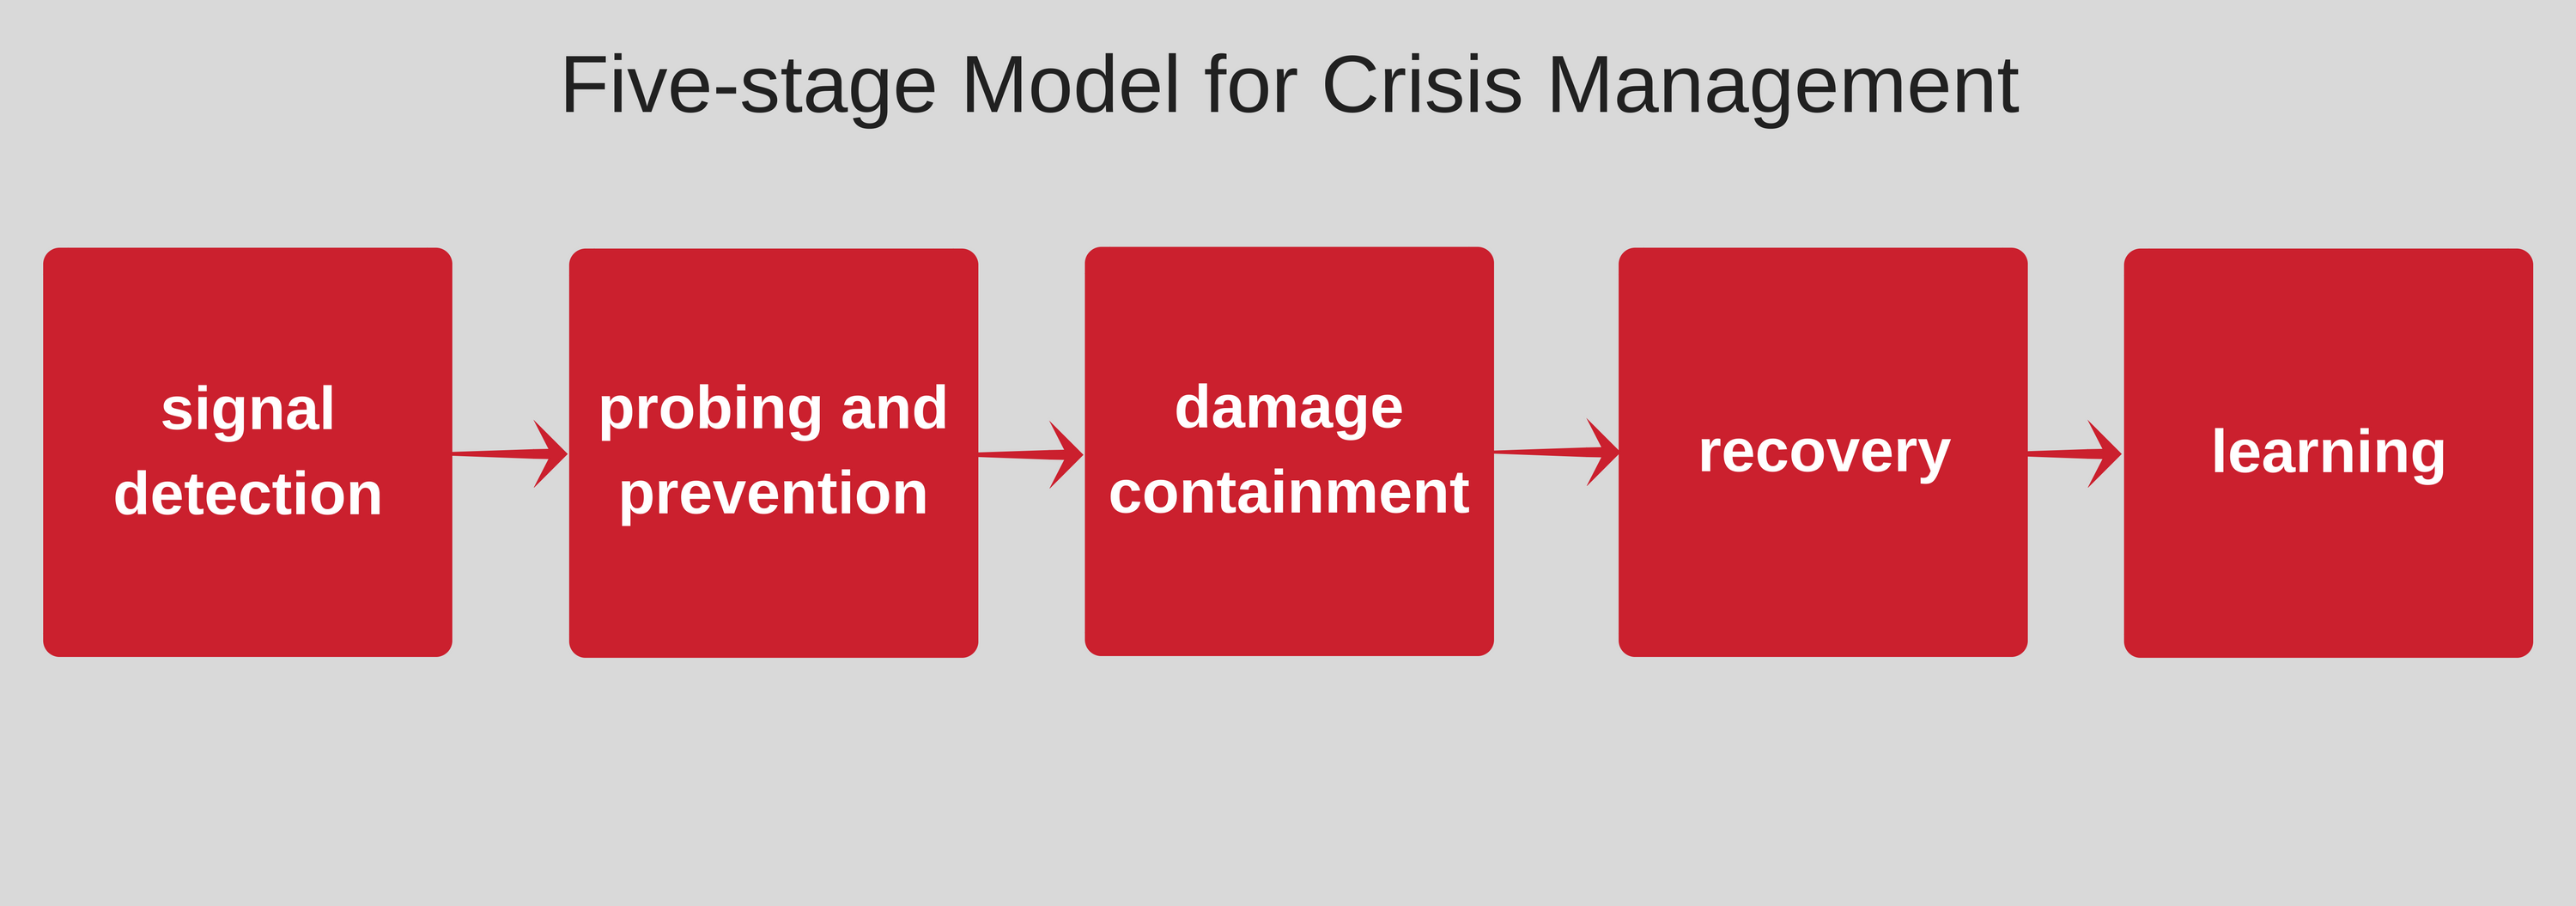 strategic decision making in crisis situations Factors influencing strategic decision-making processes mahmood nooraie ph d in management , islamic azad university, abhar branch, iran if a decision is perceived as a crisis, different actions will be taken than if the decision is perceived as an opportunity.